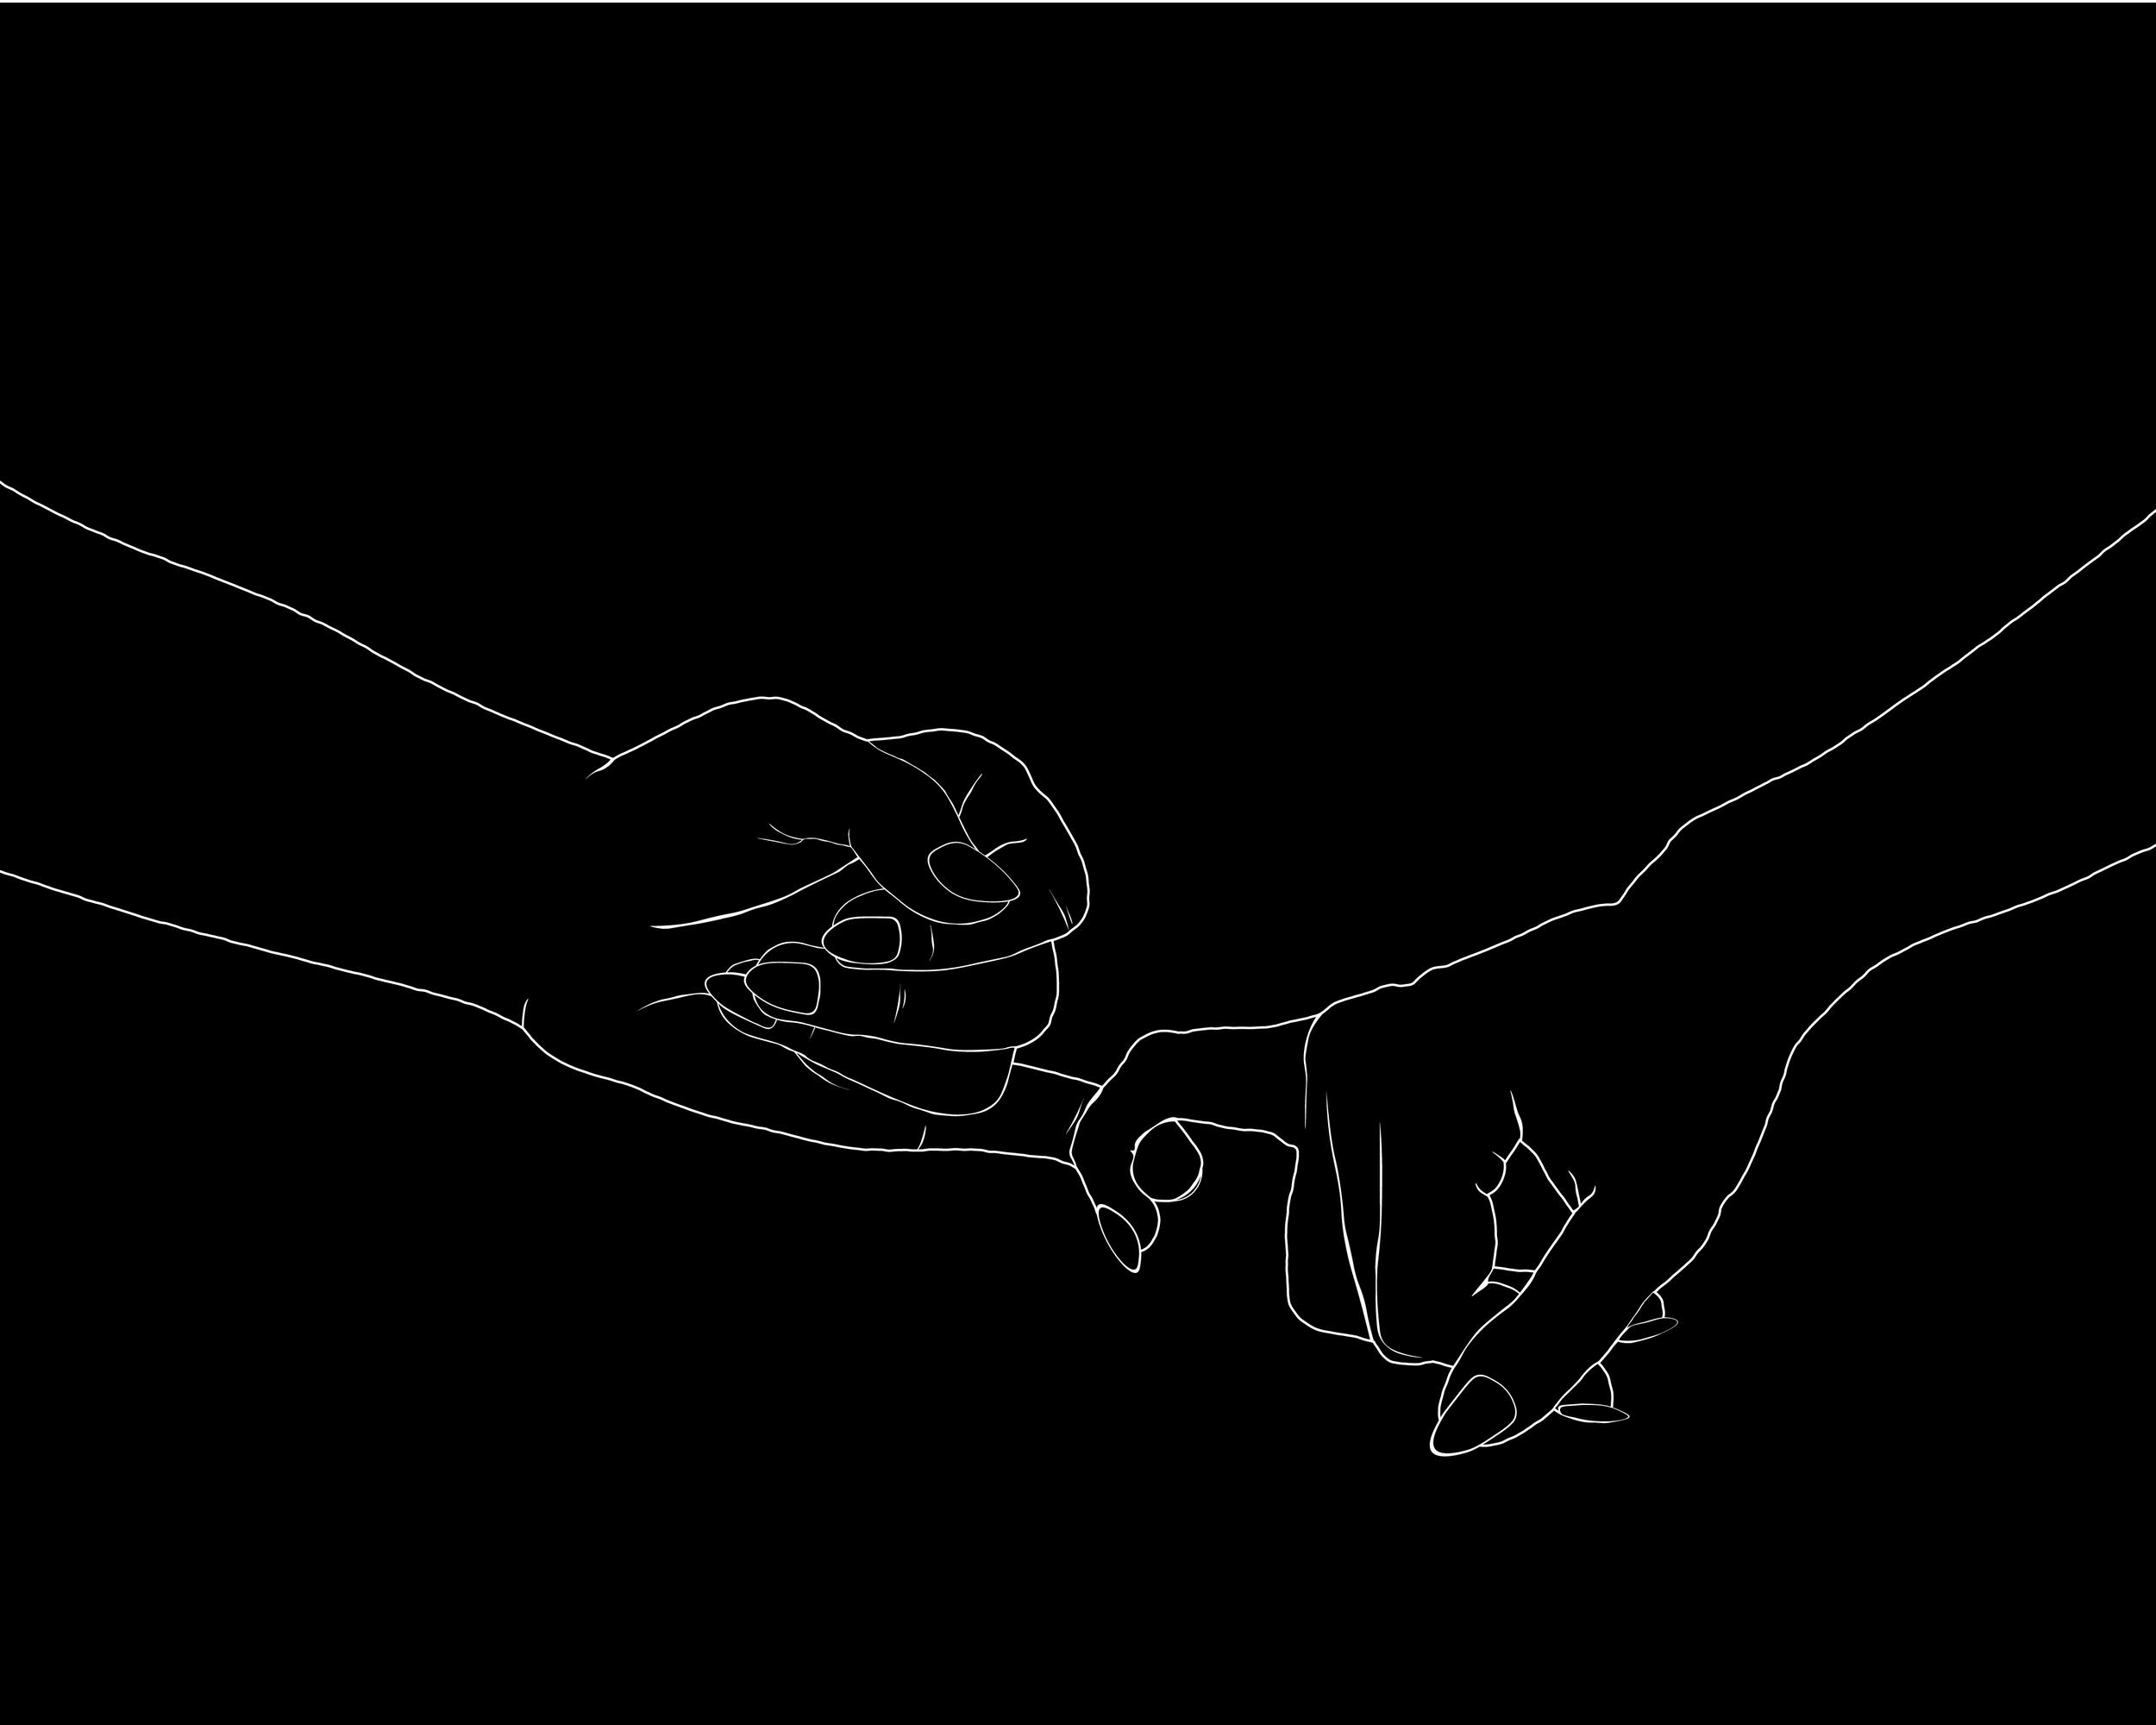 Hand_black-01.png